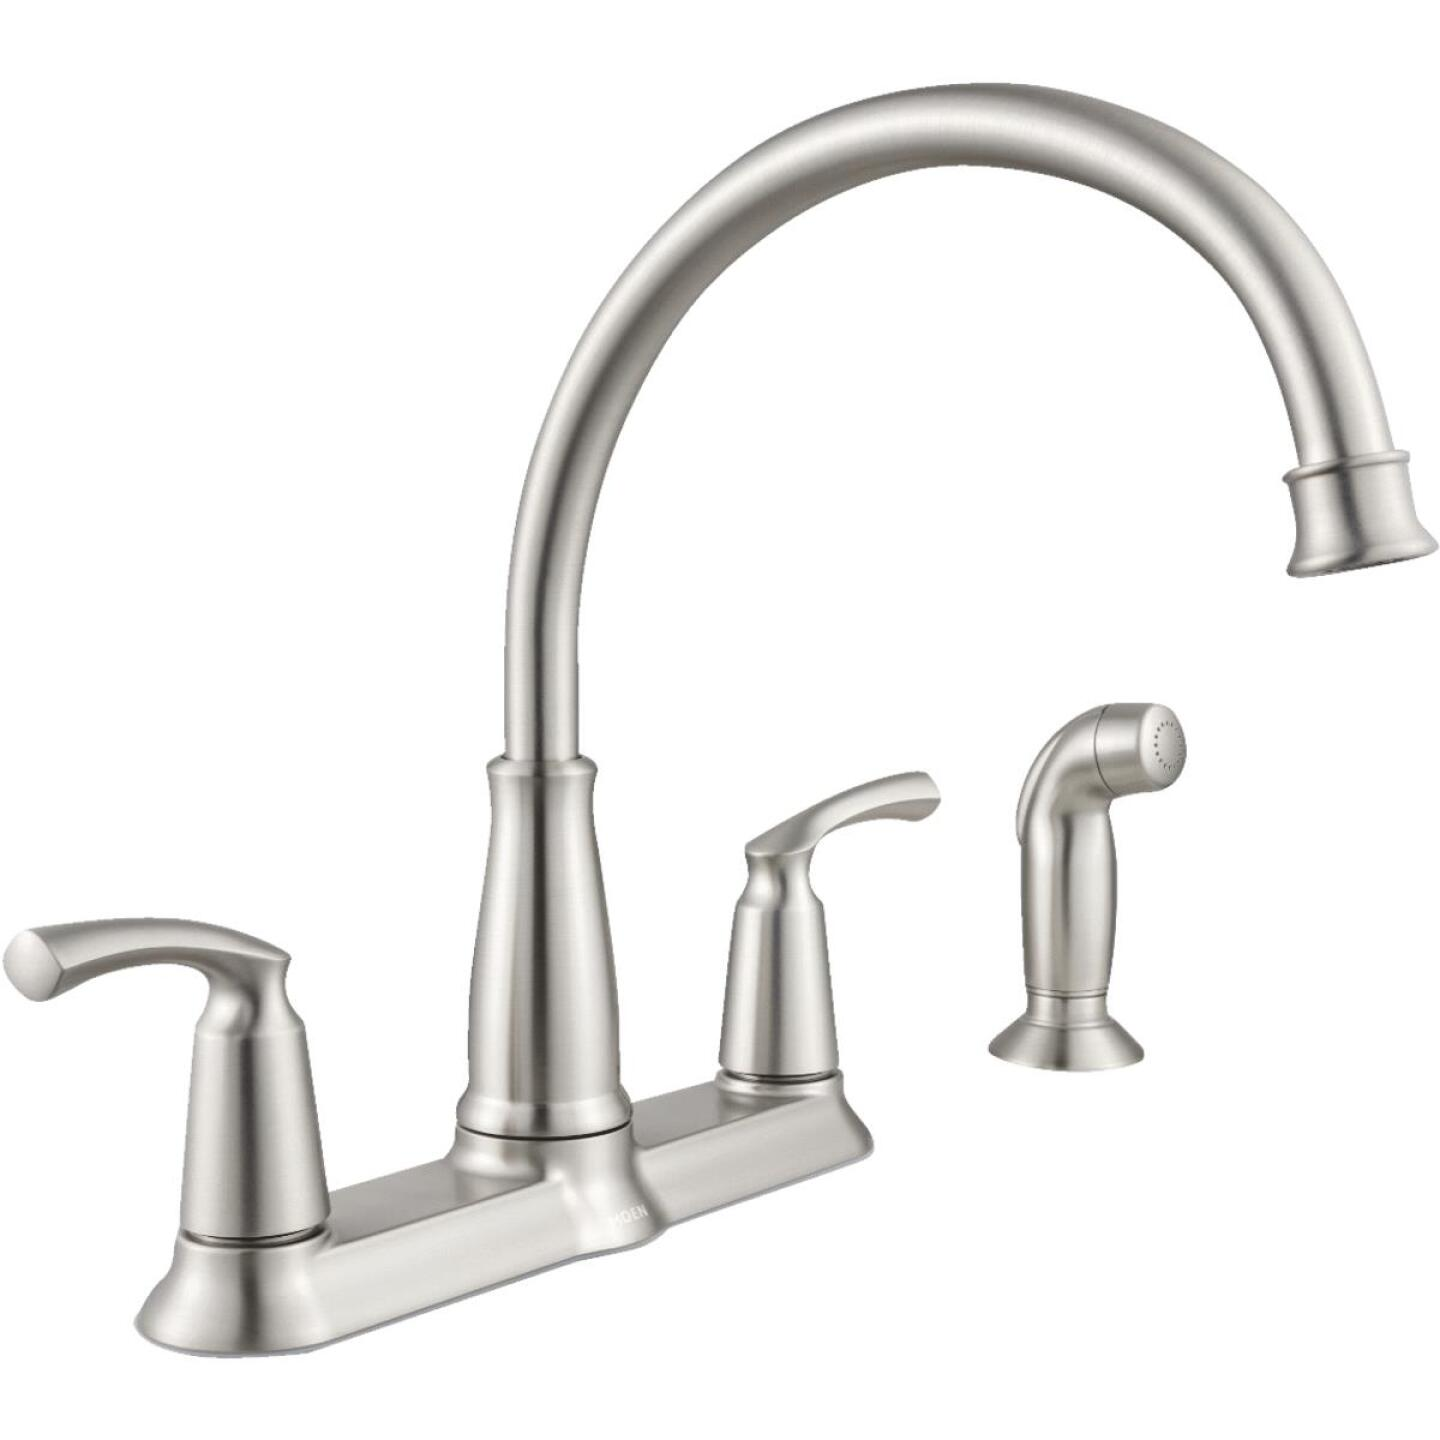 Moen Bexley Dual Handle Lever Kitchen Faucet with Side Spray, Stainless Image 1